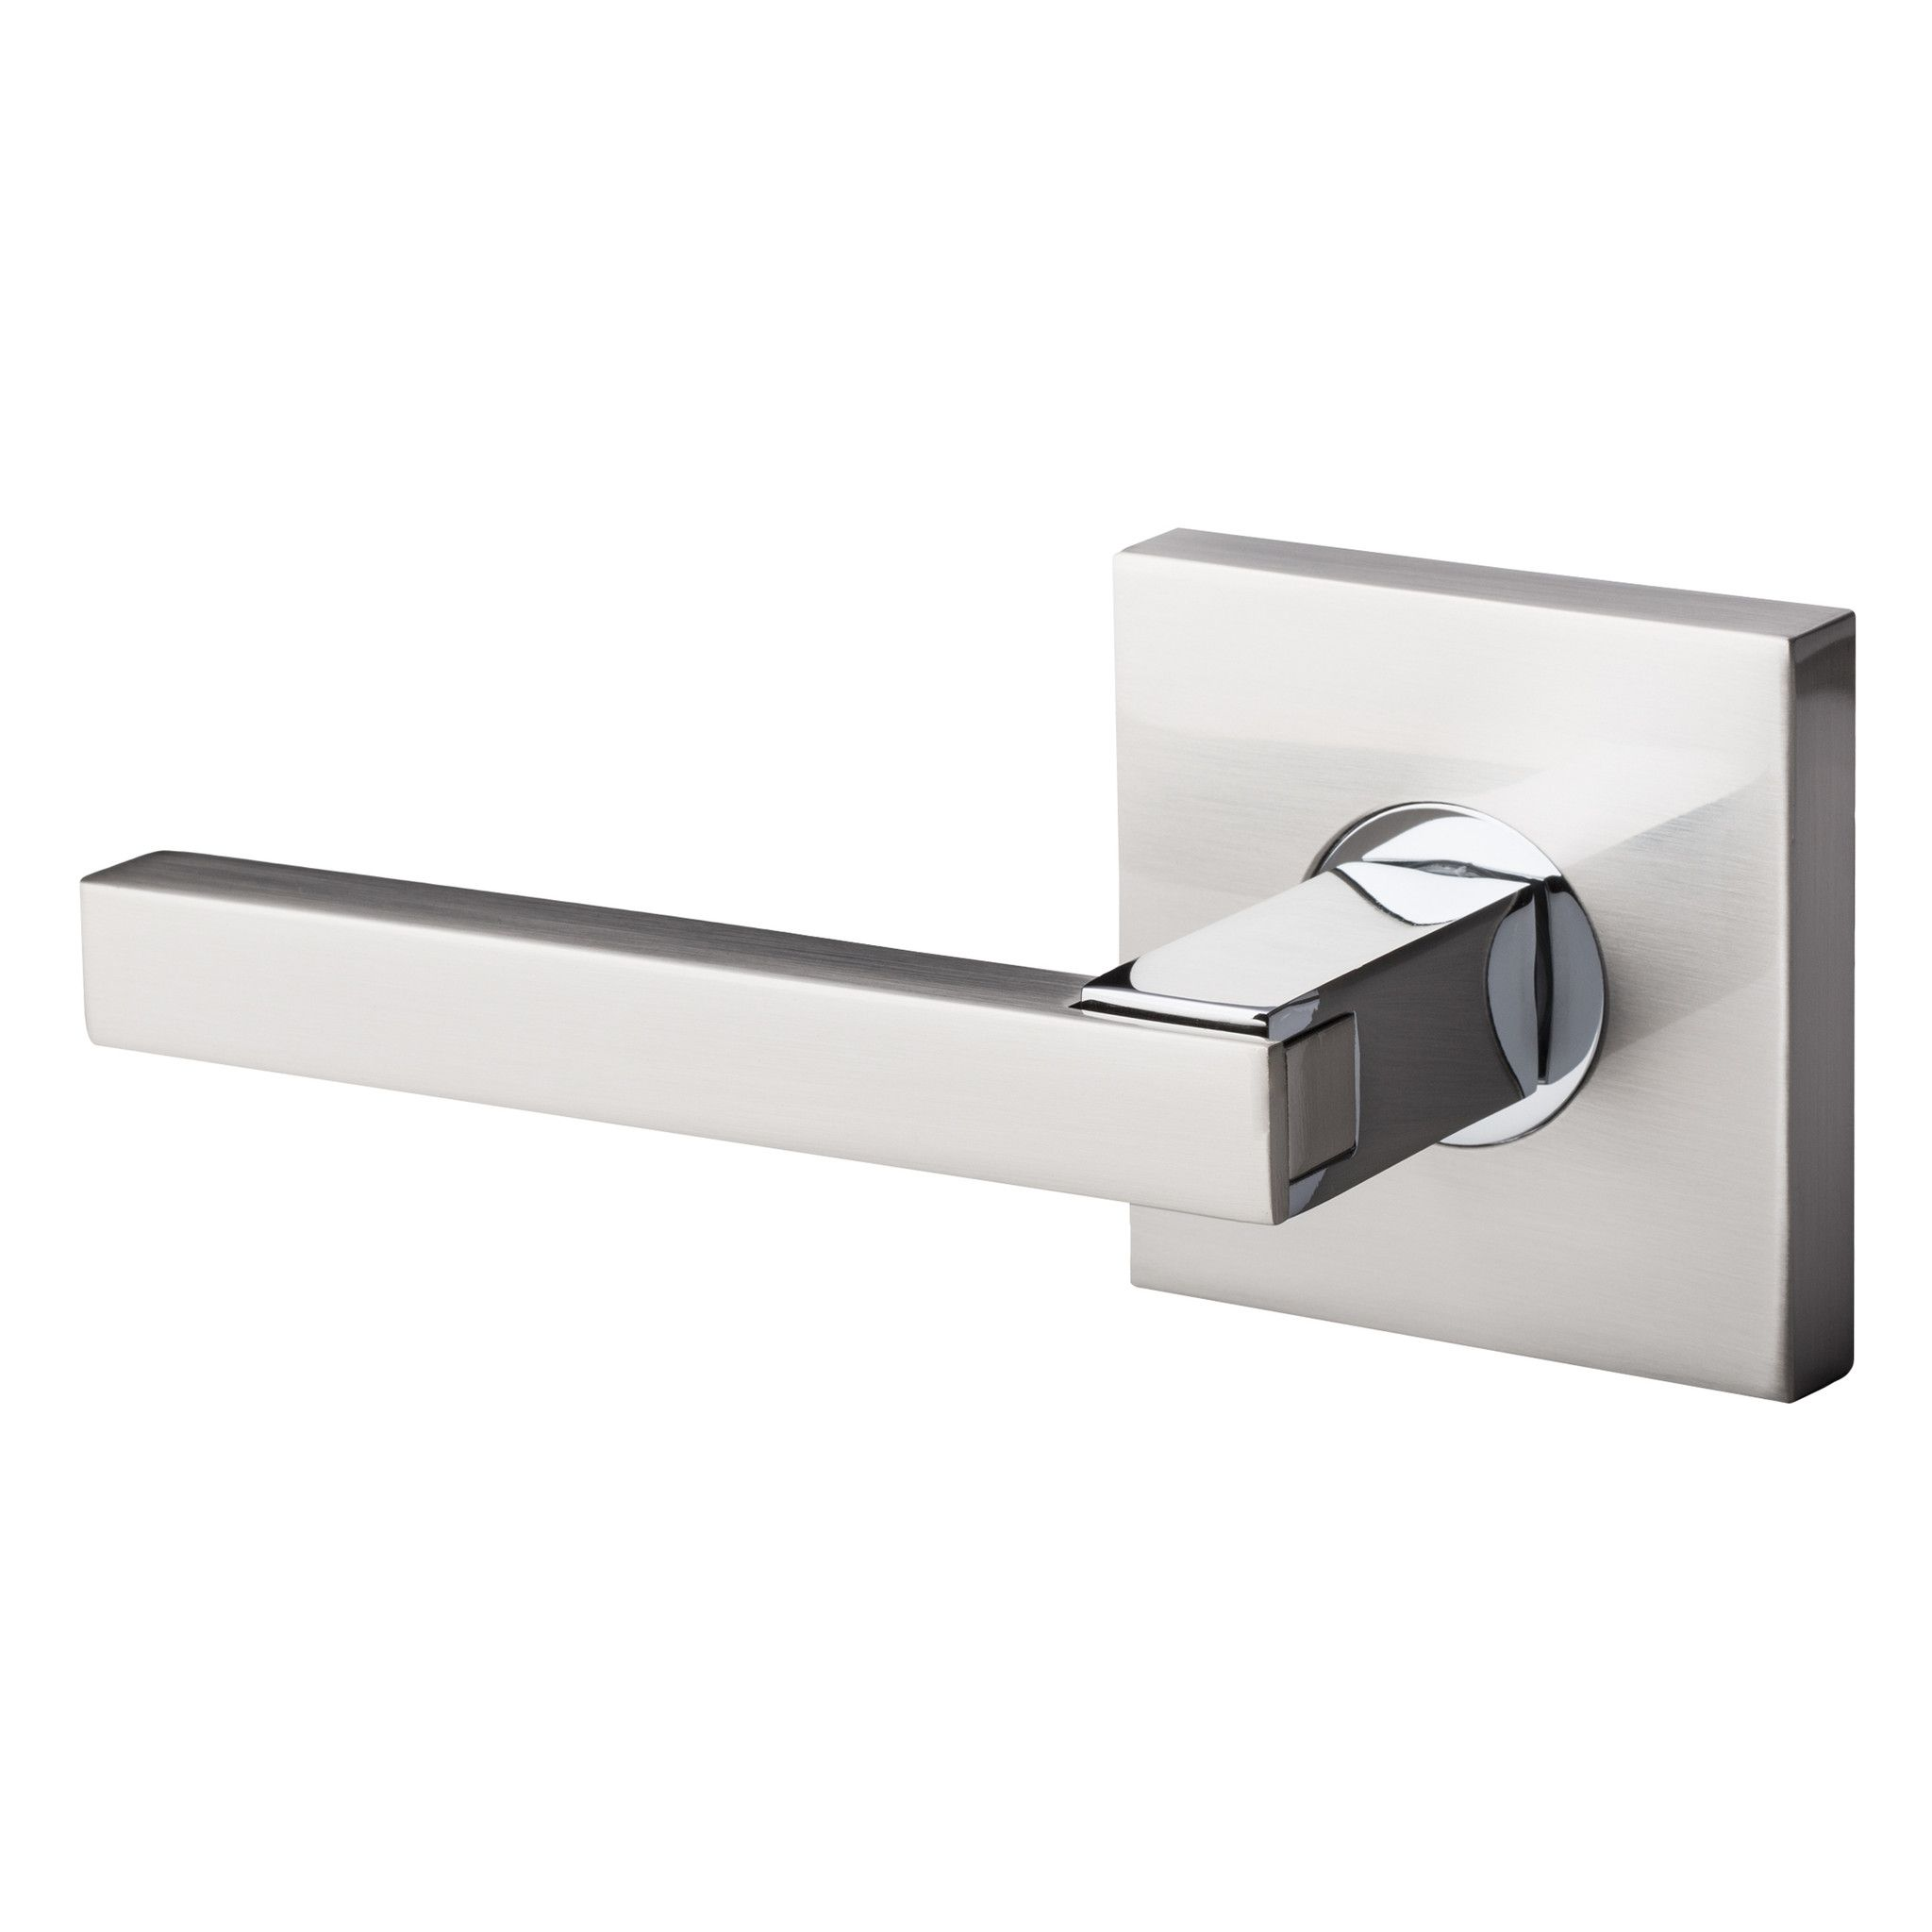 pic modern and nsyd vent for handle amazing handles interior appealing style concept door internal doors